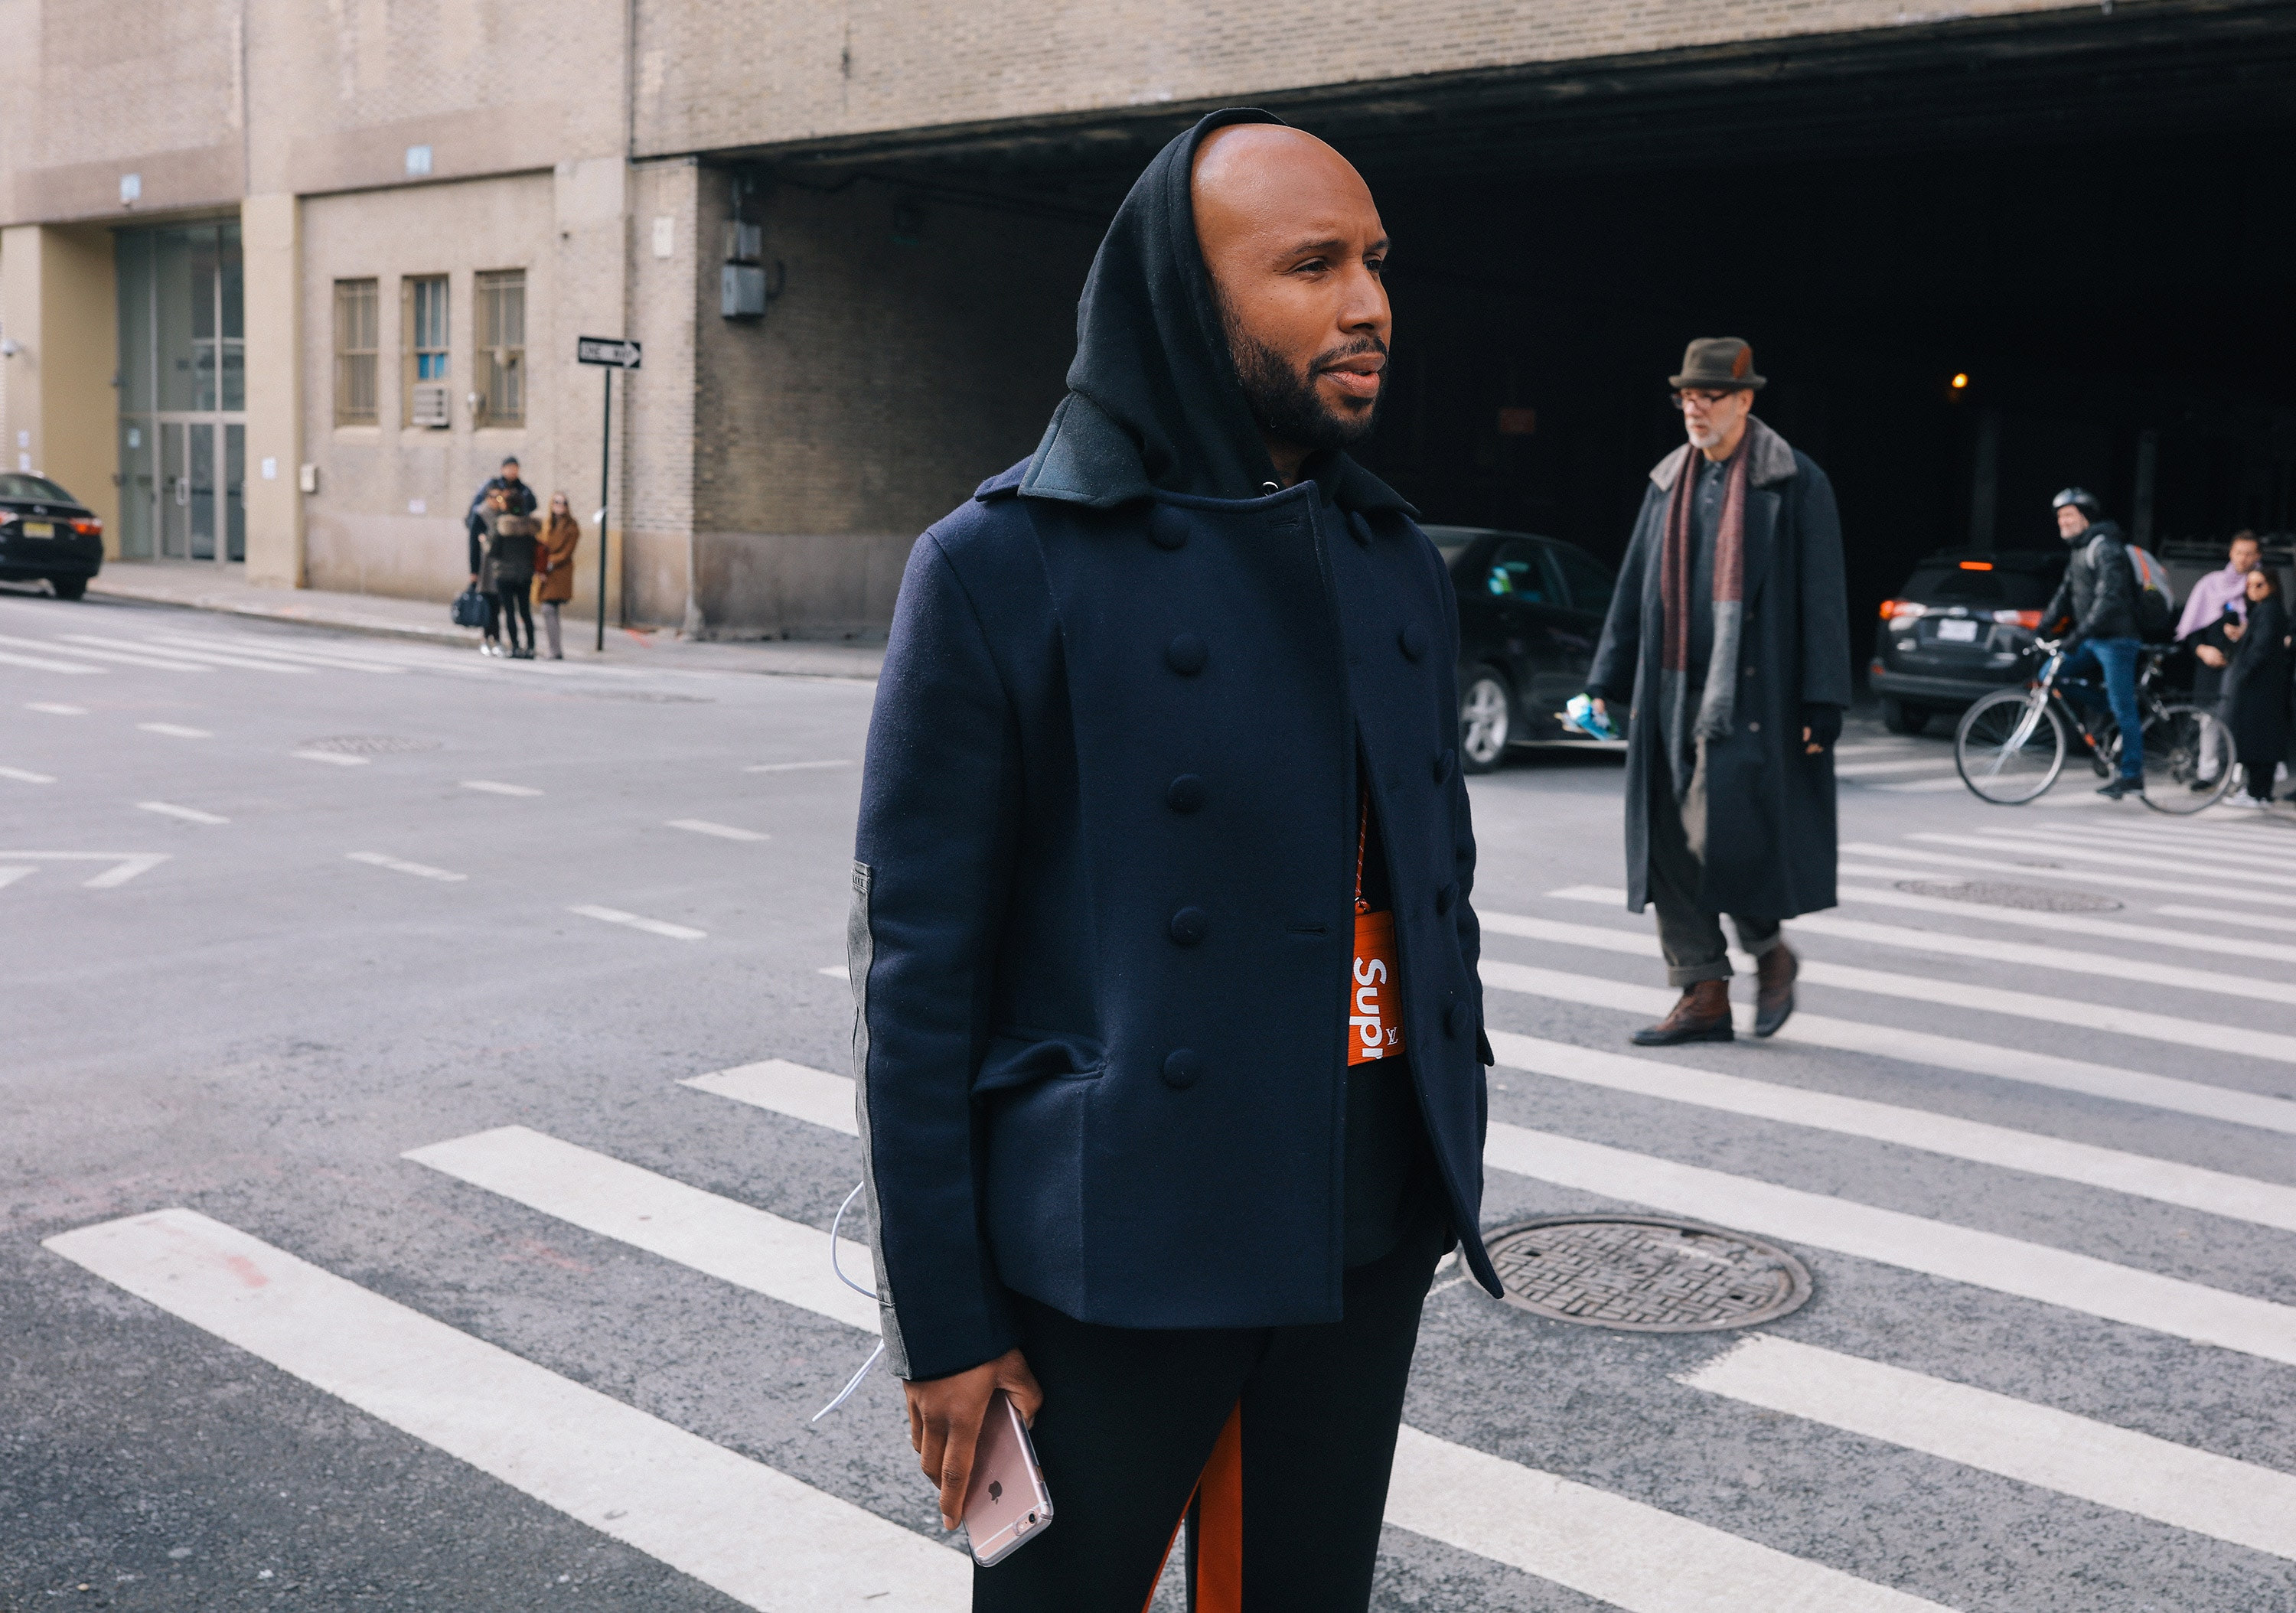 http://assets.vogue.com/photos/5893654ab4a4bd466012c3c0/master/pass/20-phil-oh-mens-nyfw-day-2-2017.jpg